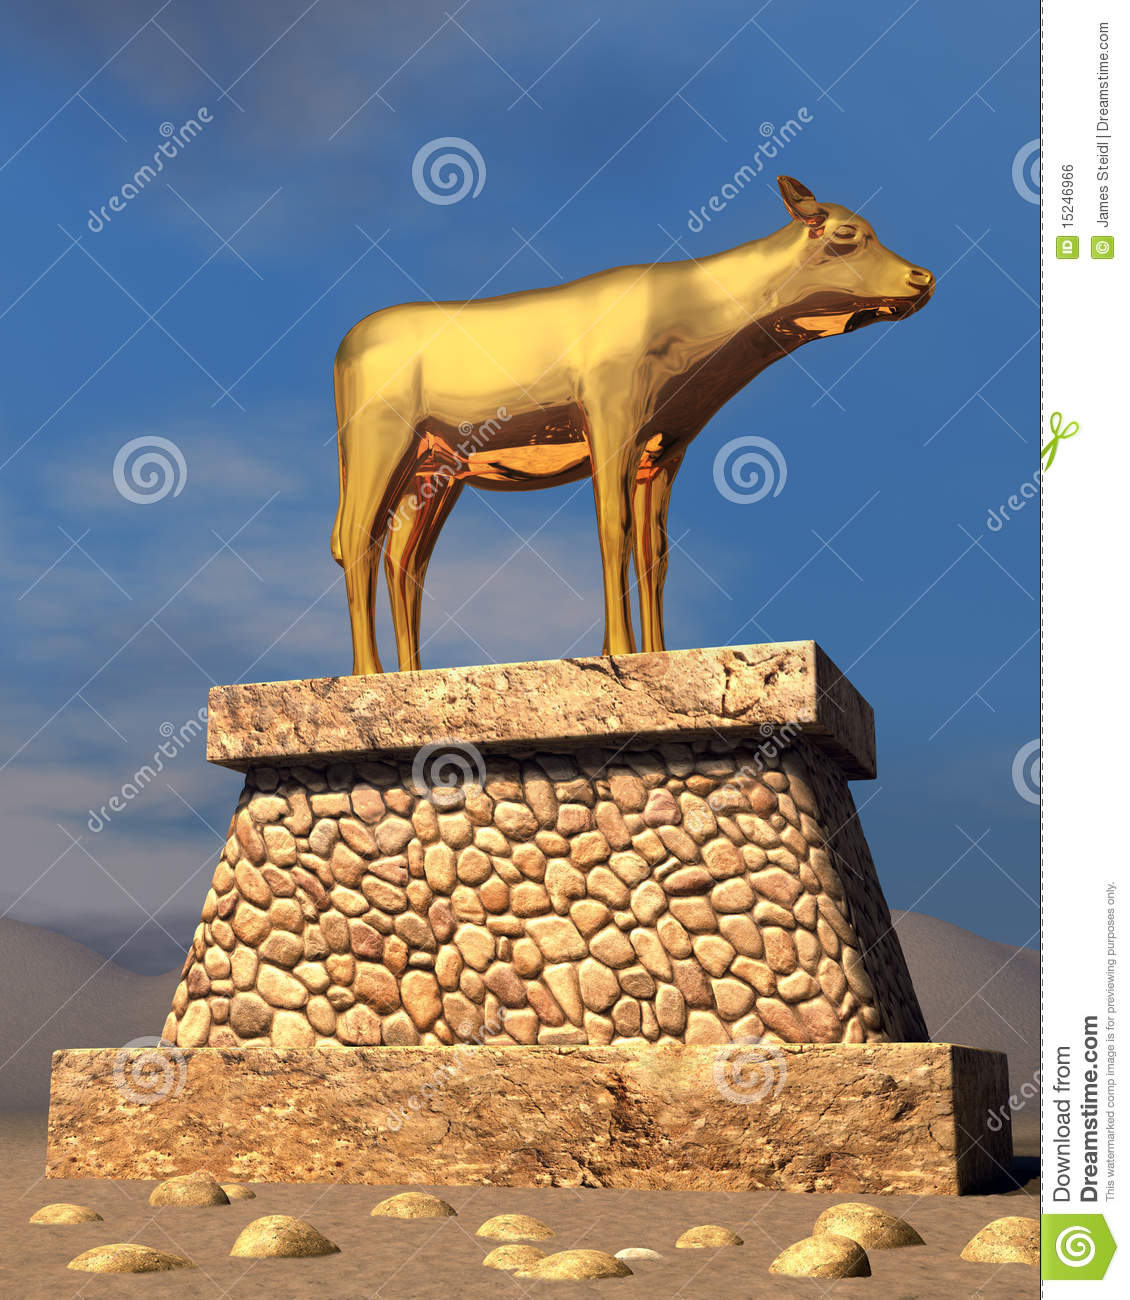 Golden Calf Royalty Free Stock Image   Image  15246966